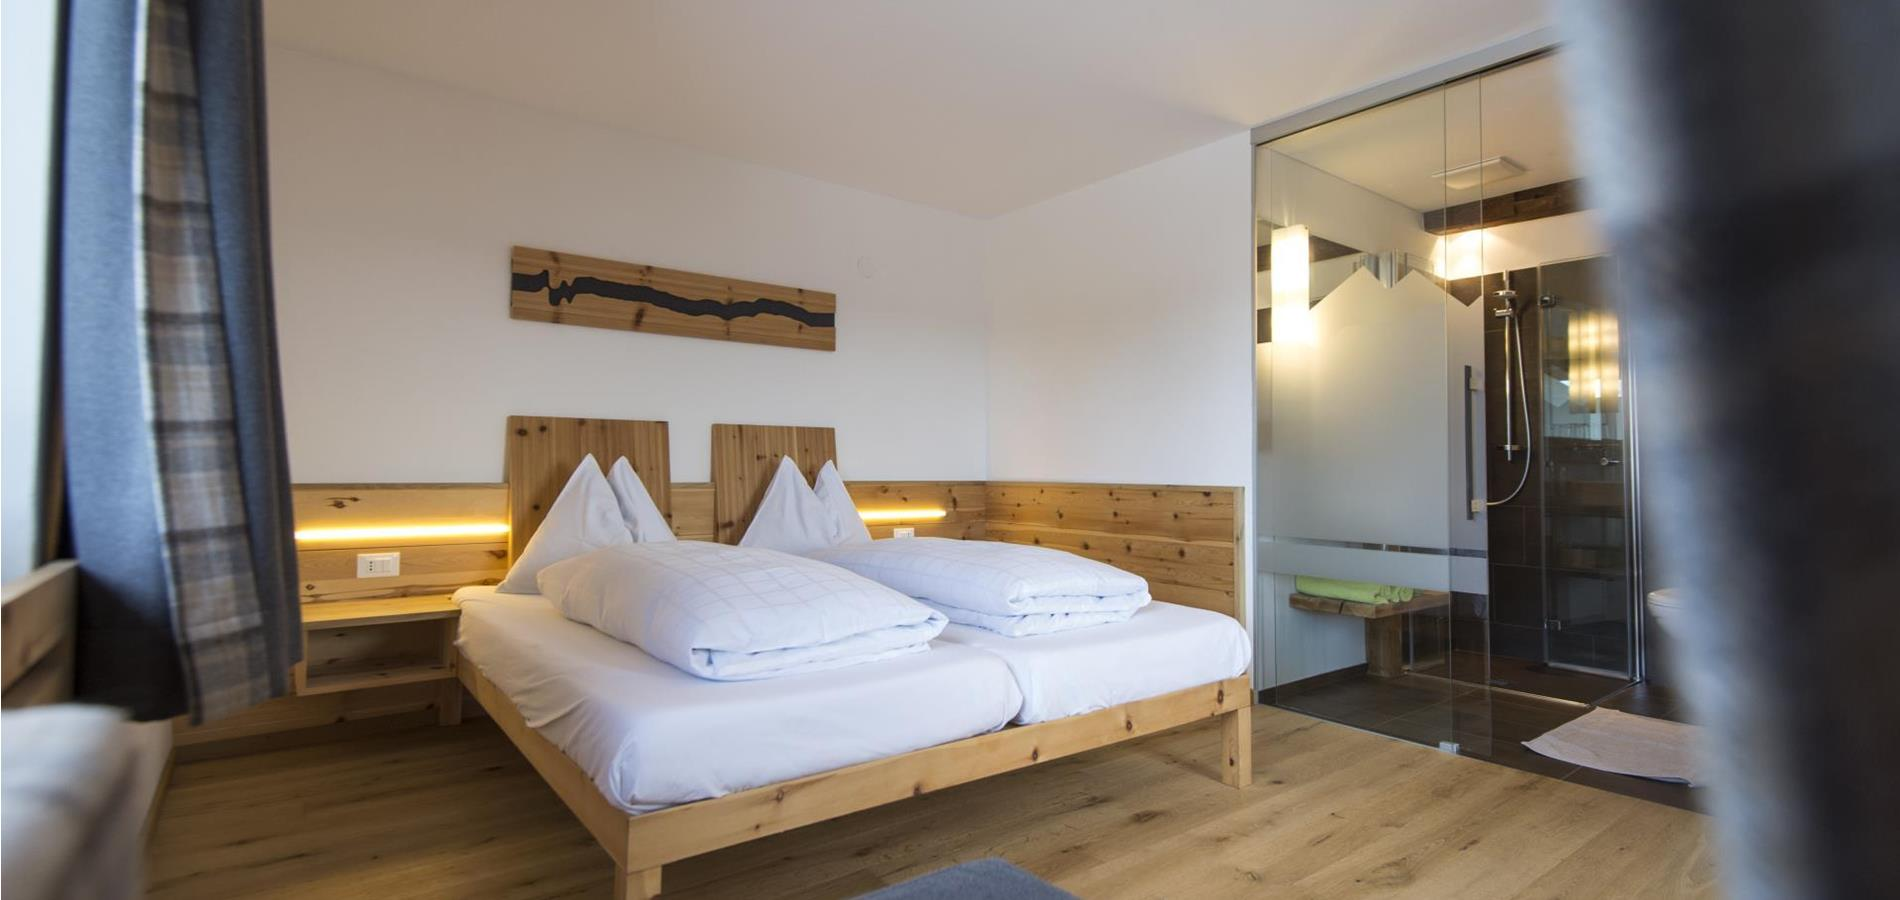 Private Rooms and Bed & Breakfast Accommodation in Merano